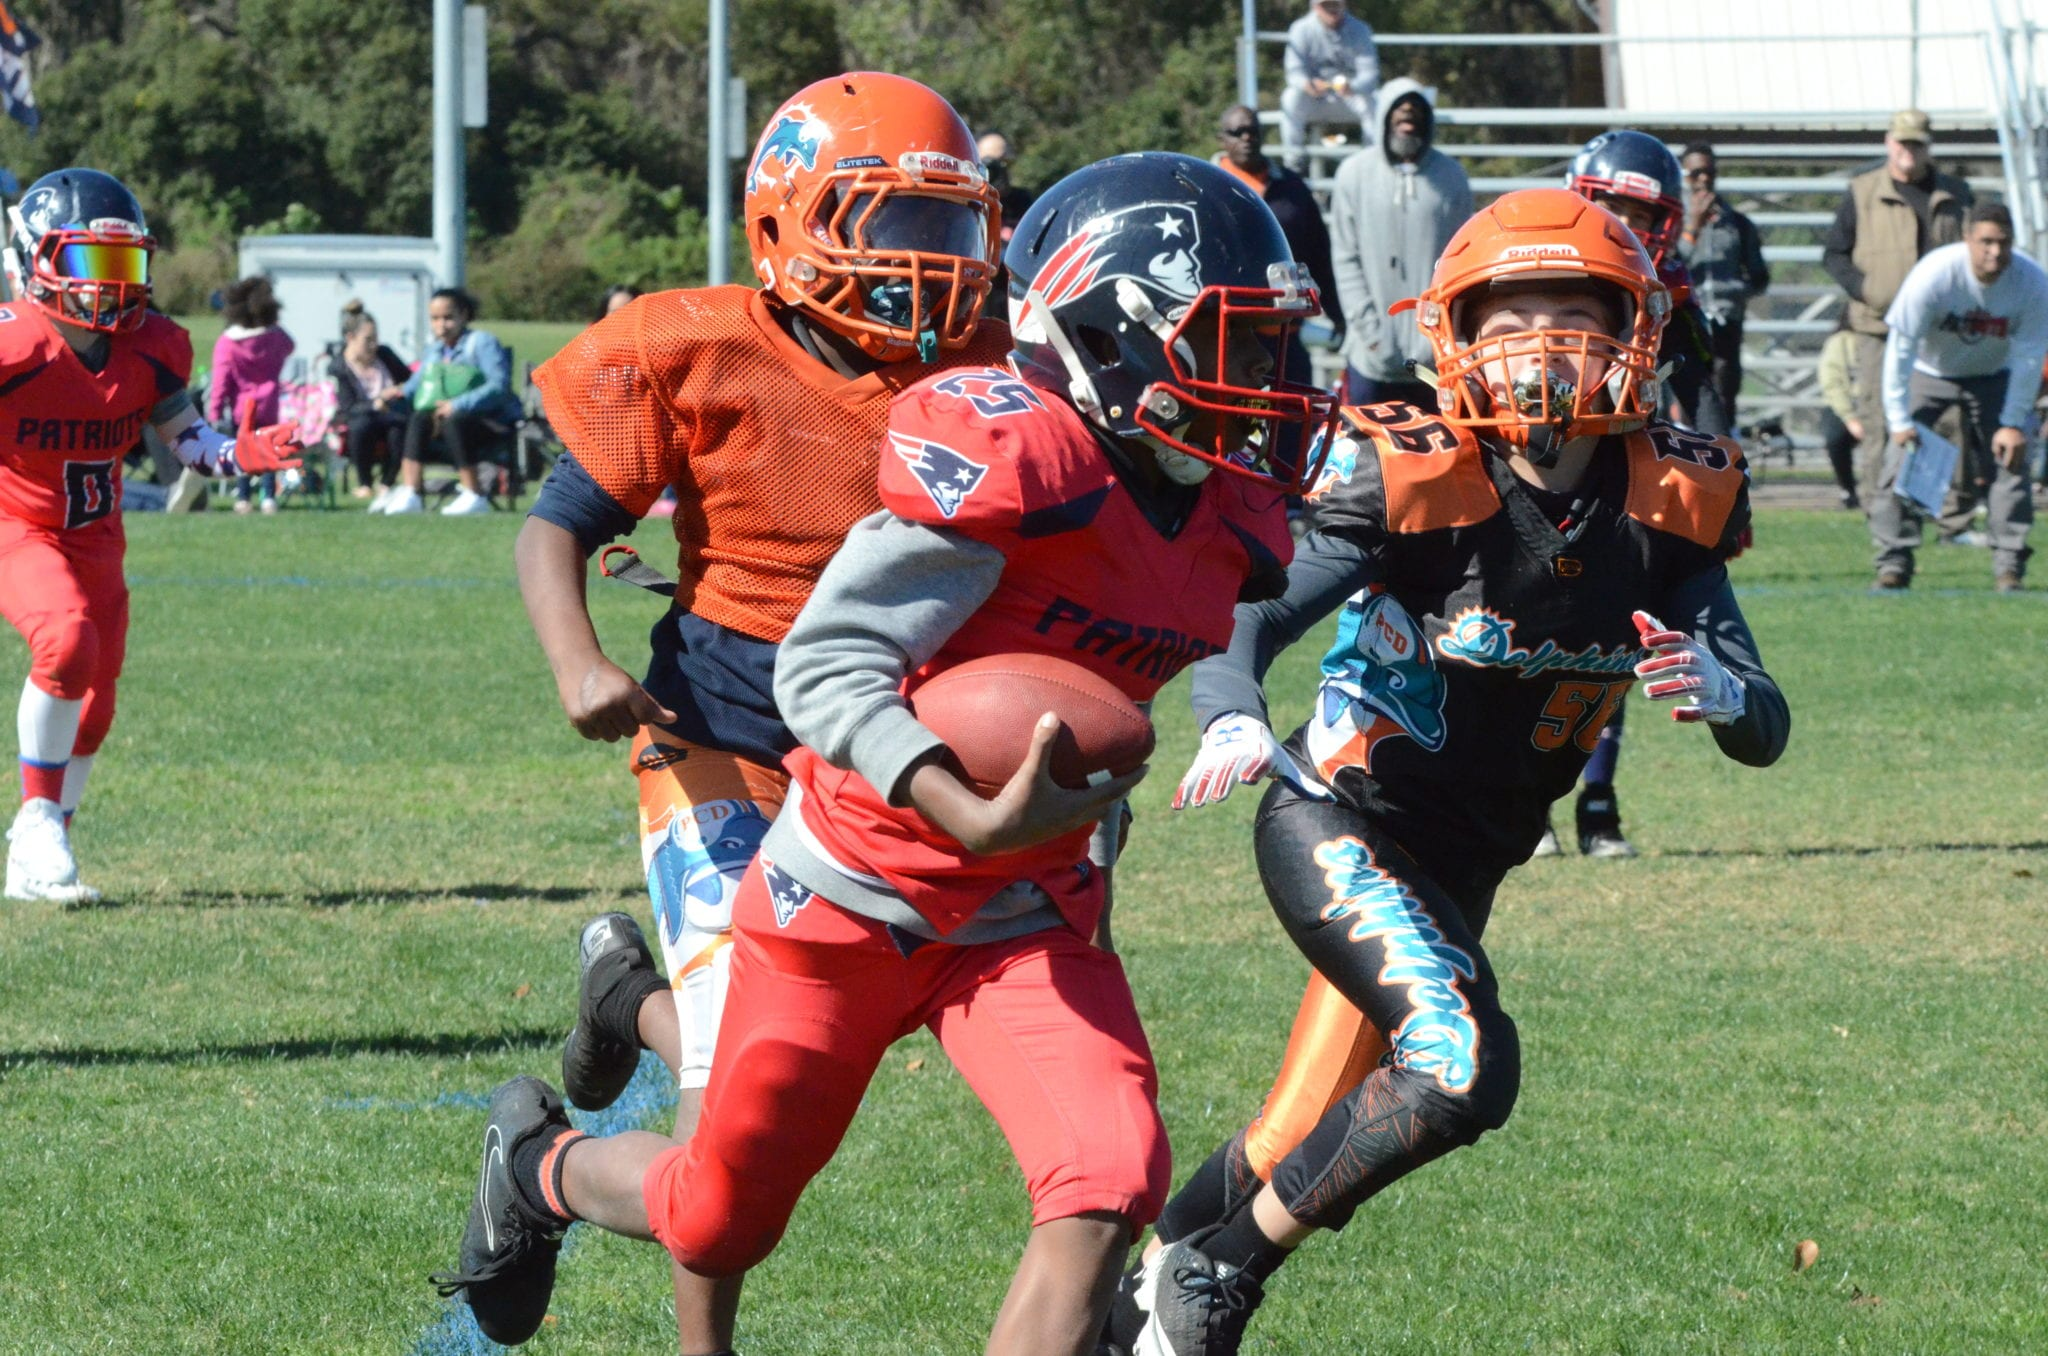 PCLL FSYFL Highlight Weekend Sports Events Plant City